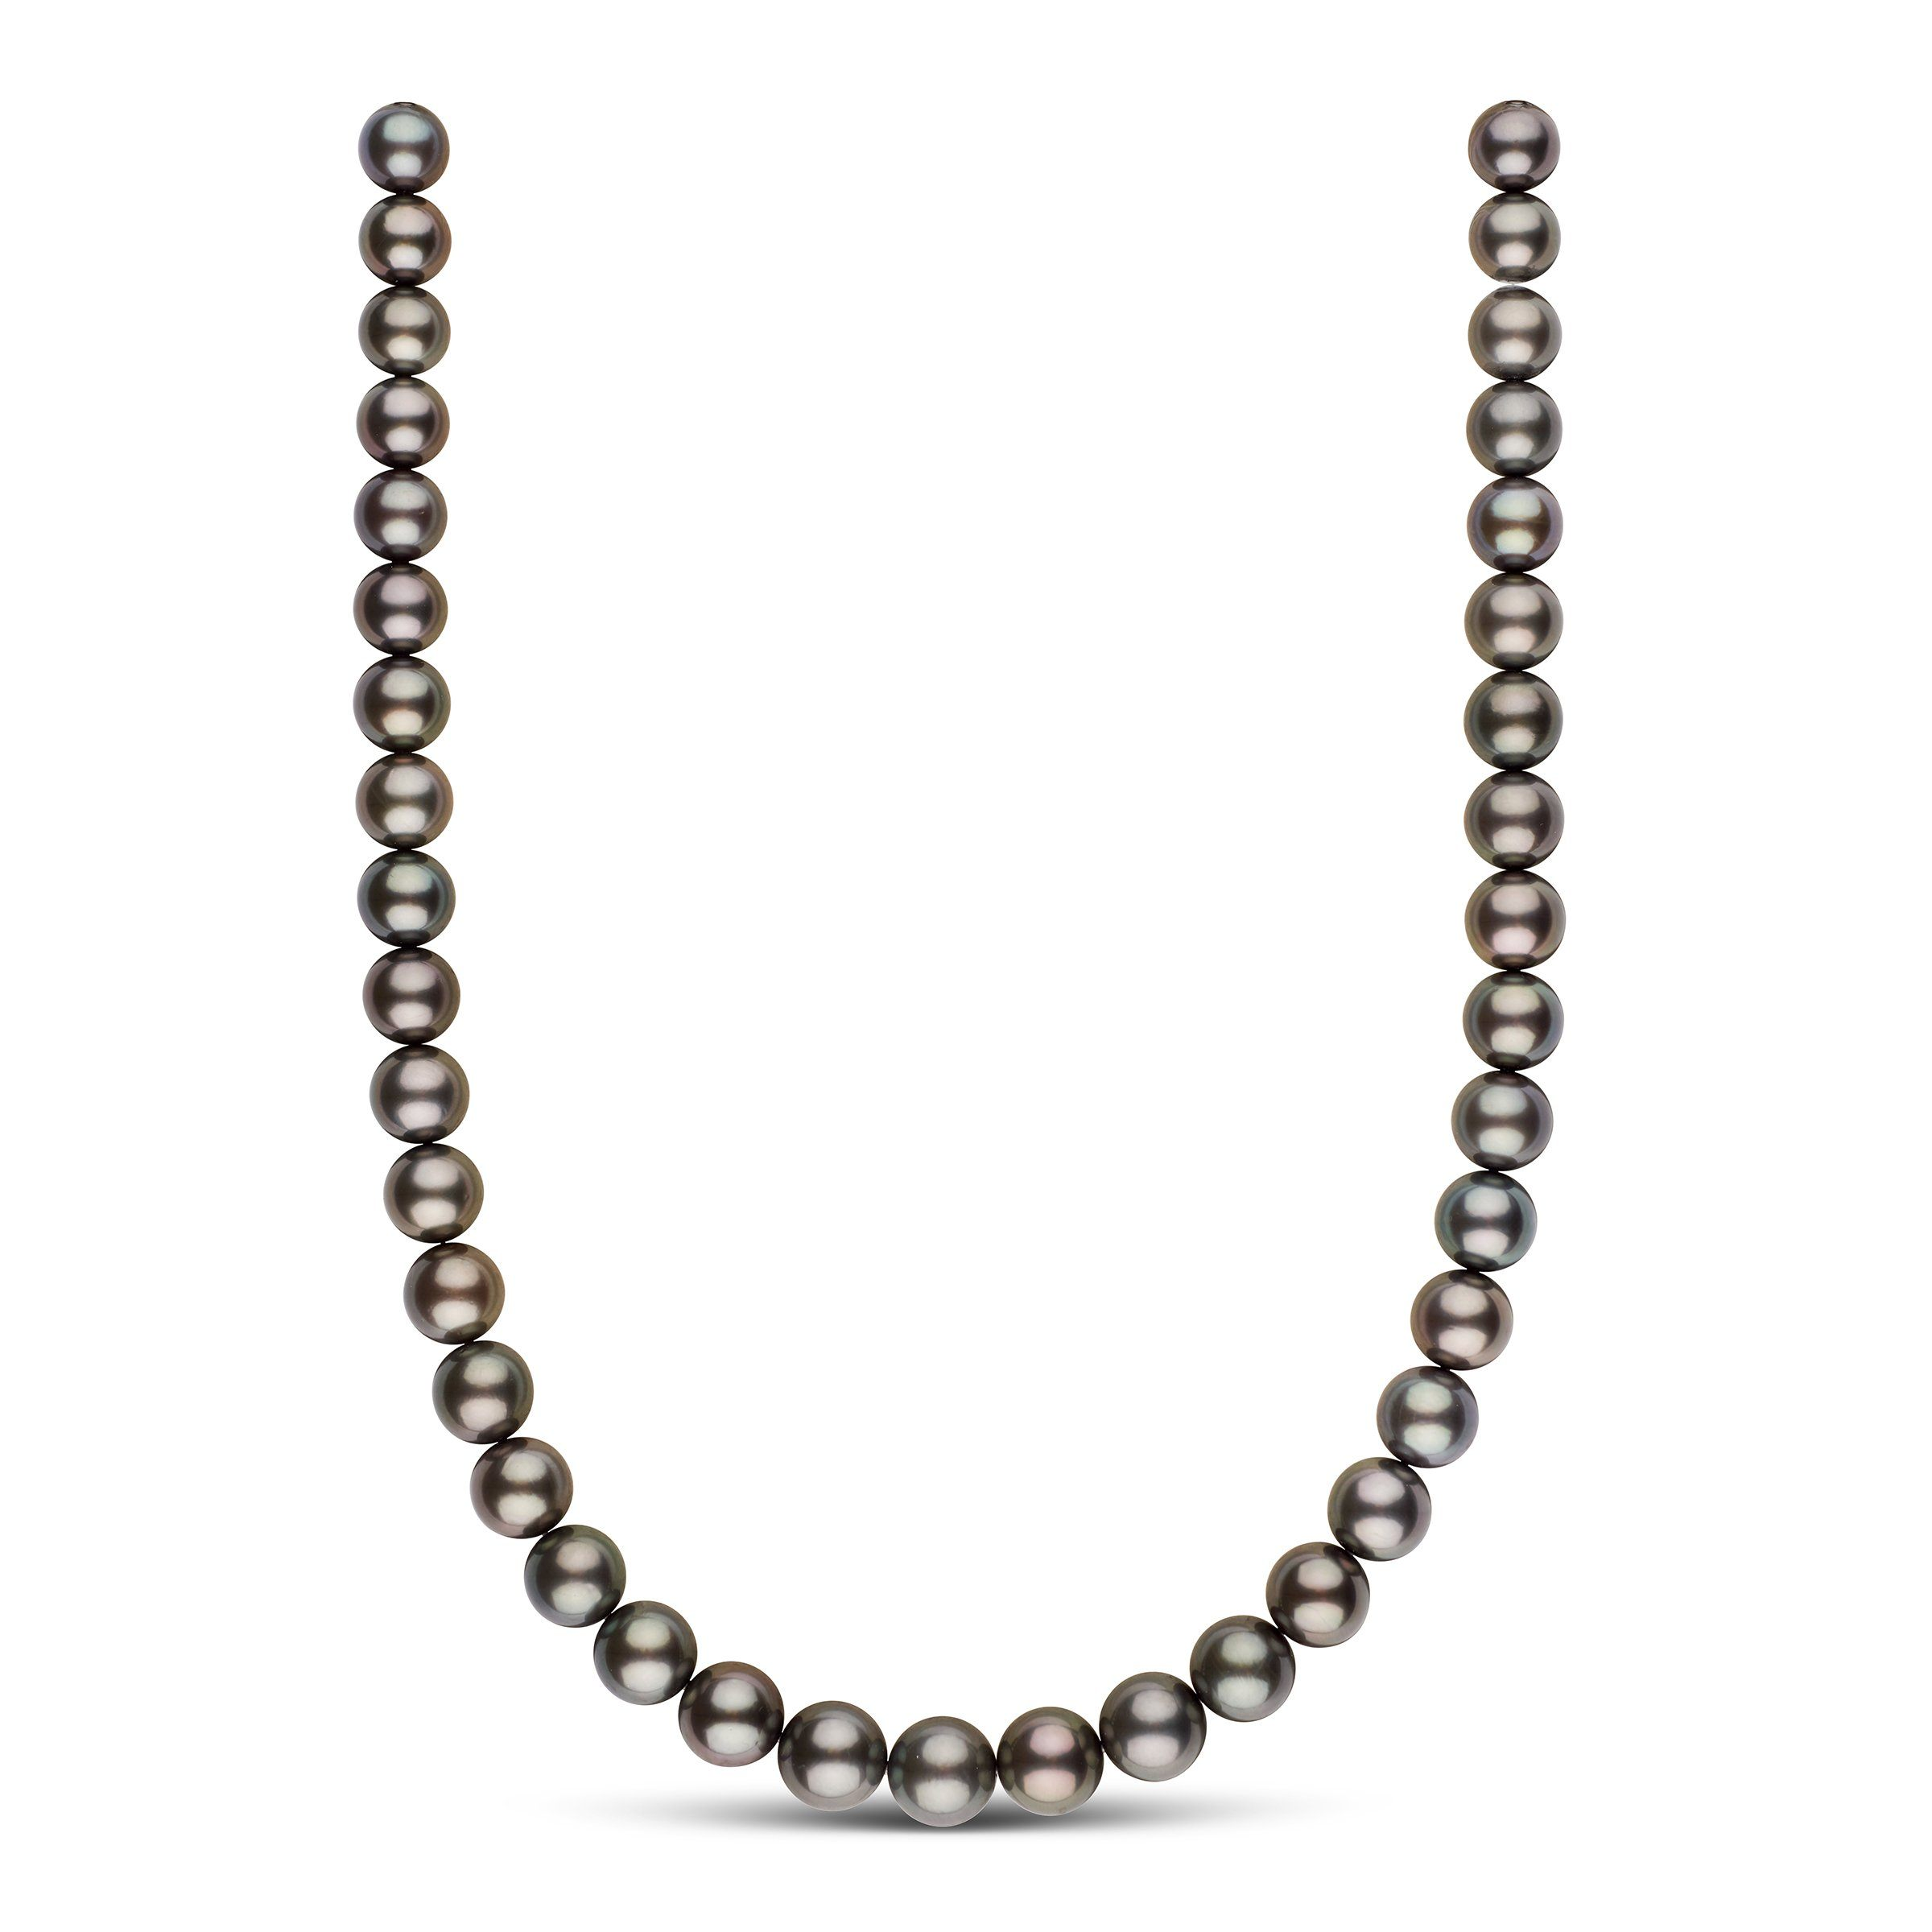 9.9-11.8 mm AAA Tahitian Round Pearl Necklace